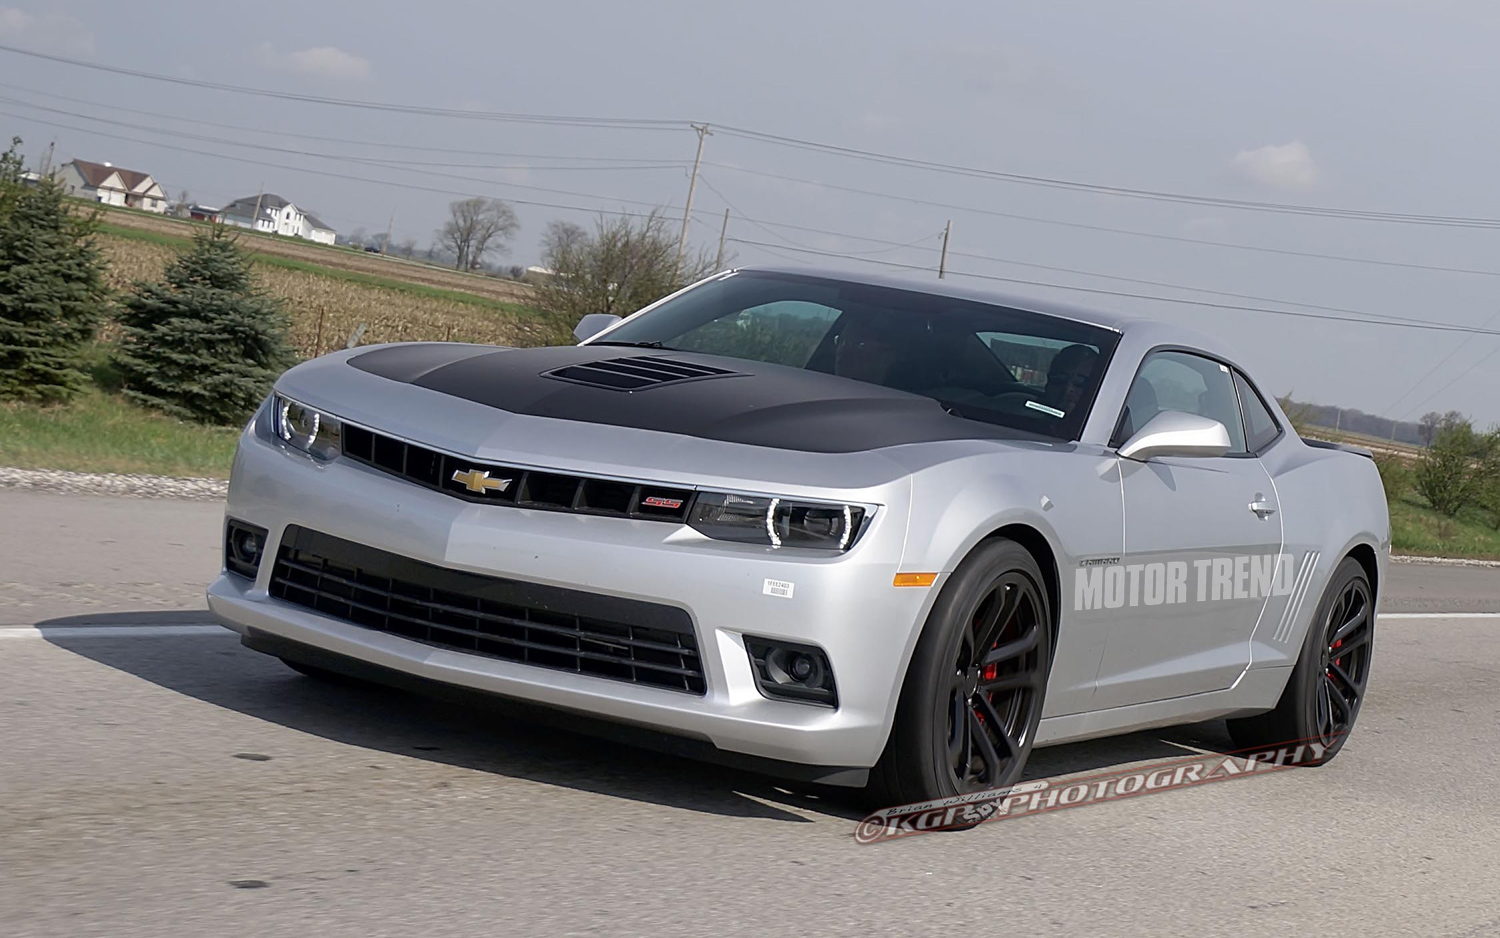 2014 Chevrolet Camaro Spied In ZL1, 1LE, RS Forms